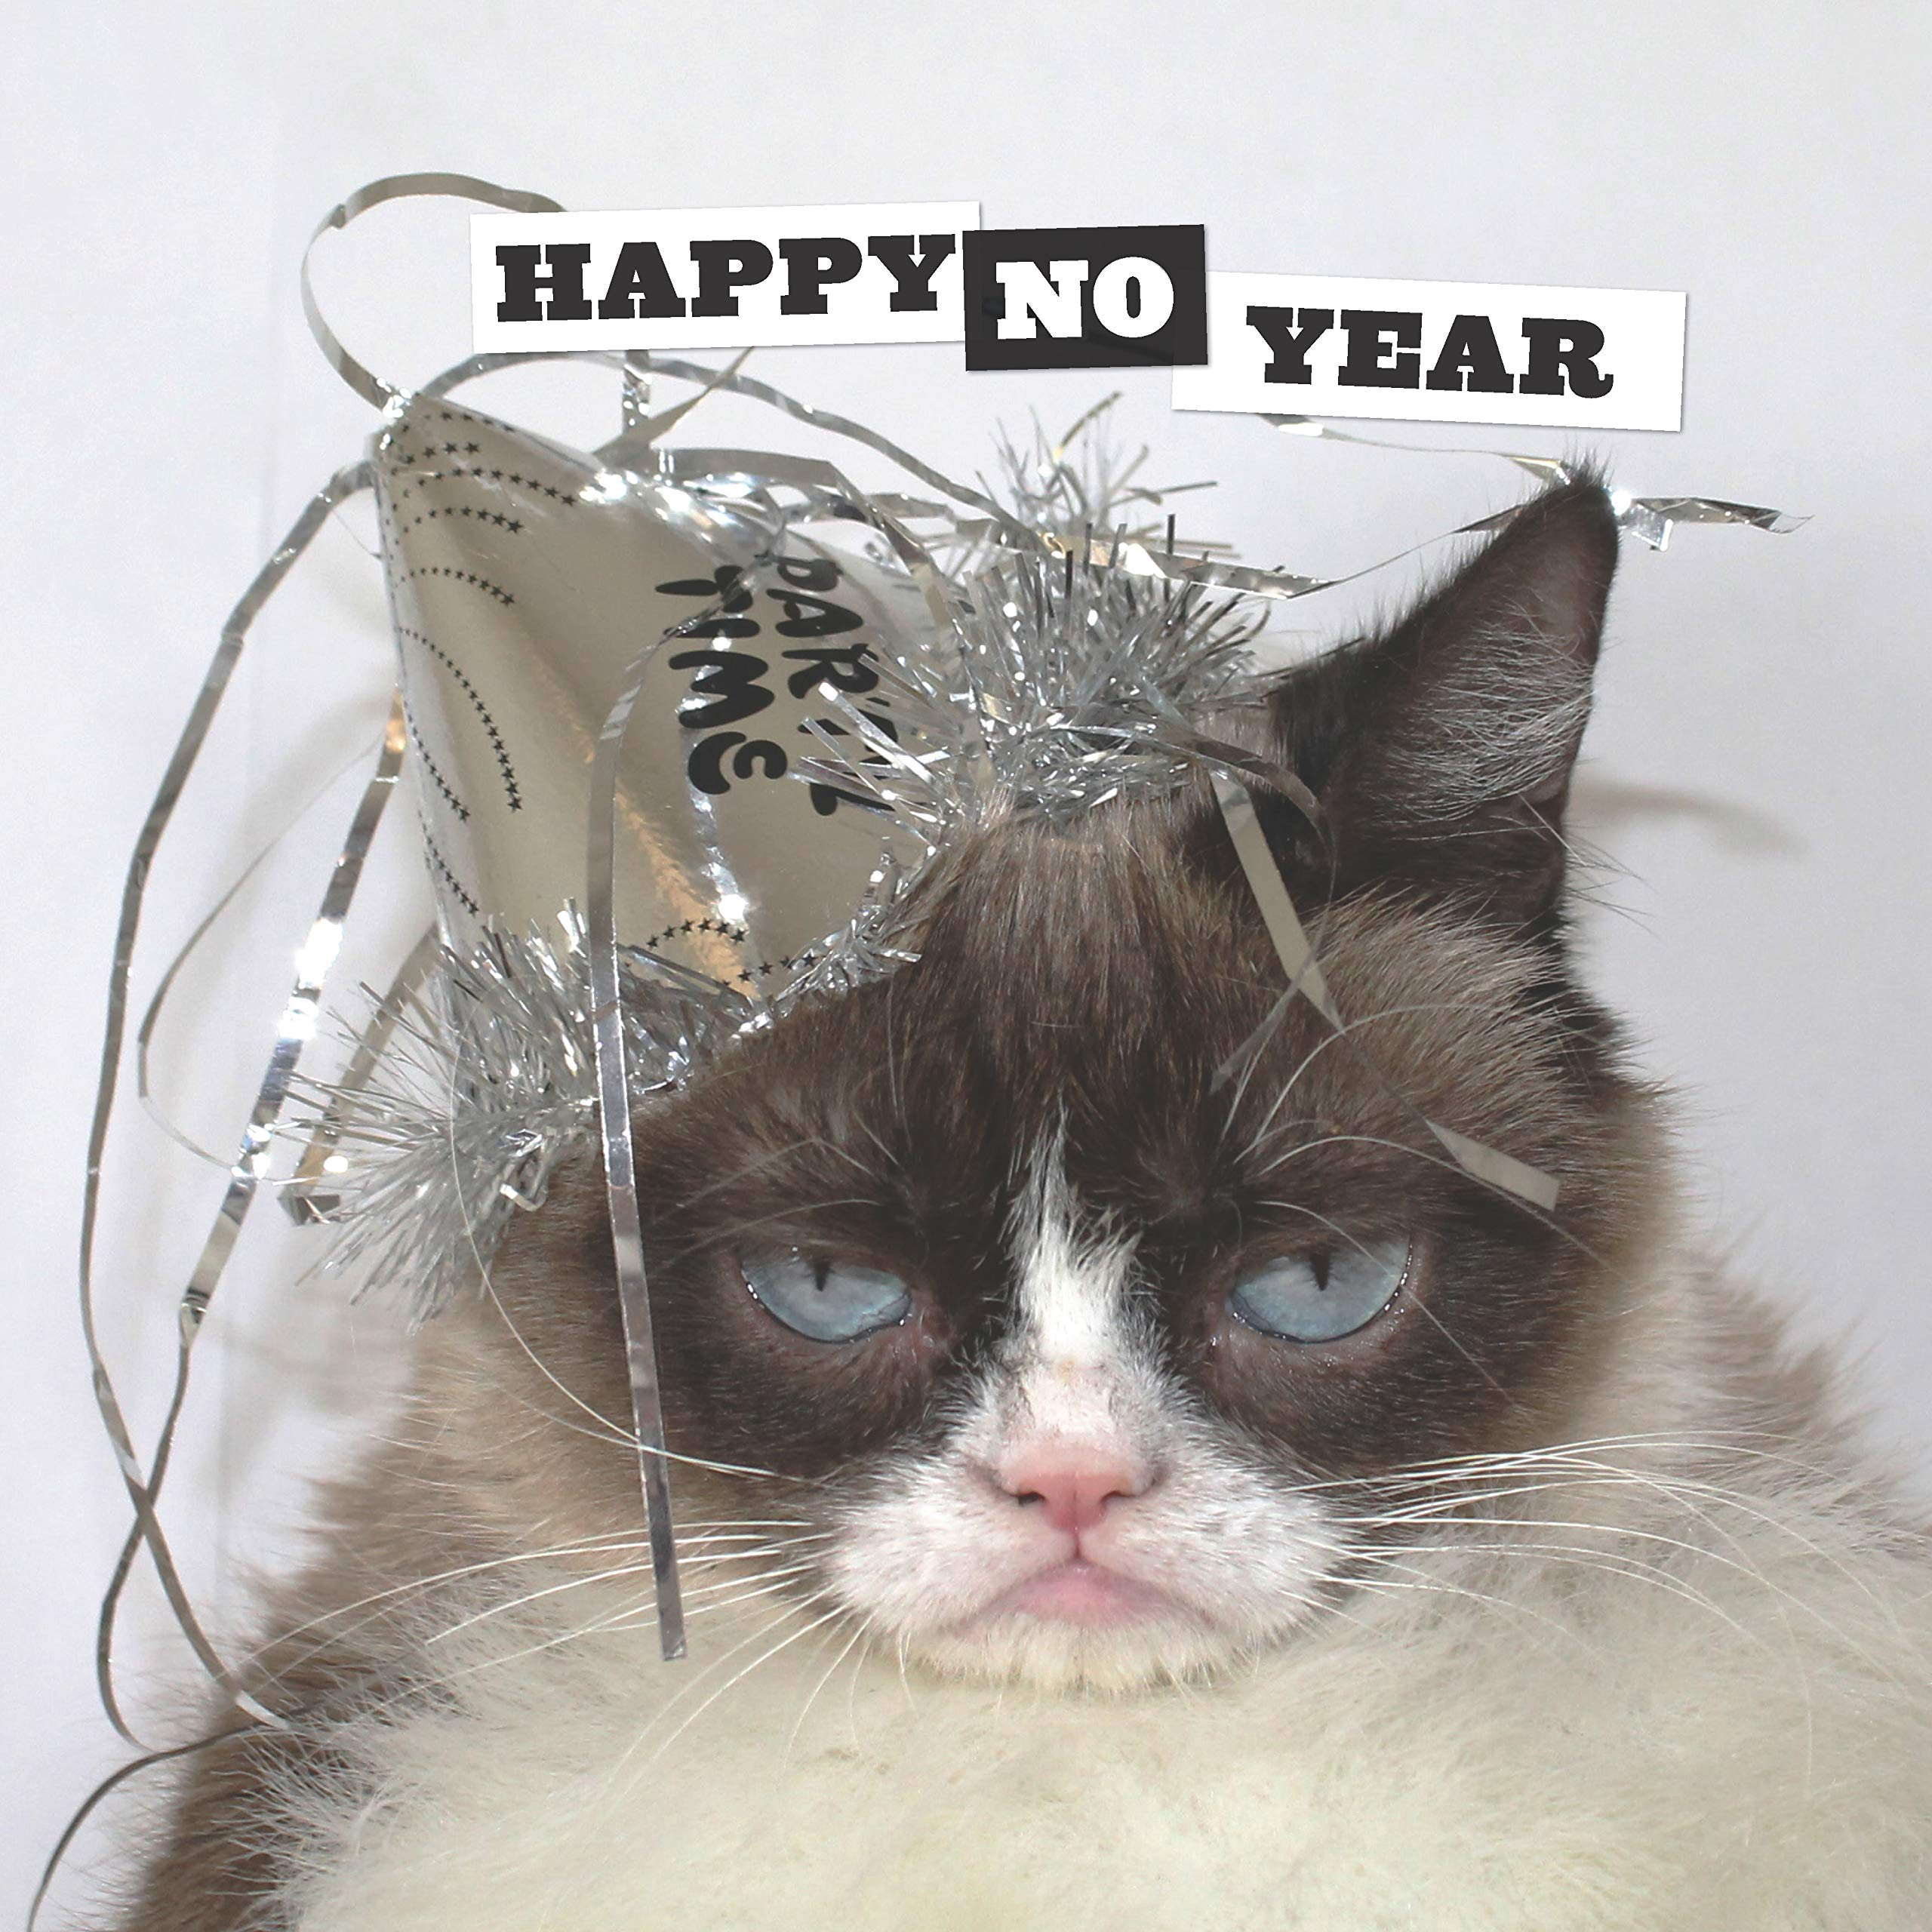 Grumpy Cat wishing folks a Happy No Year.